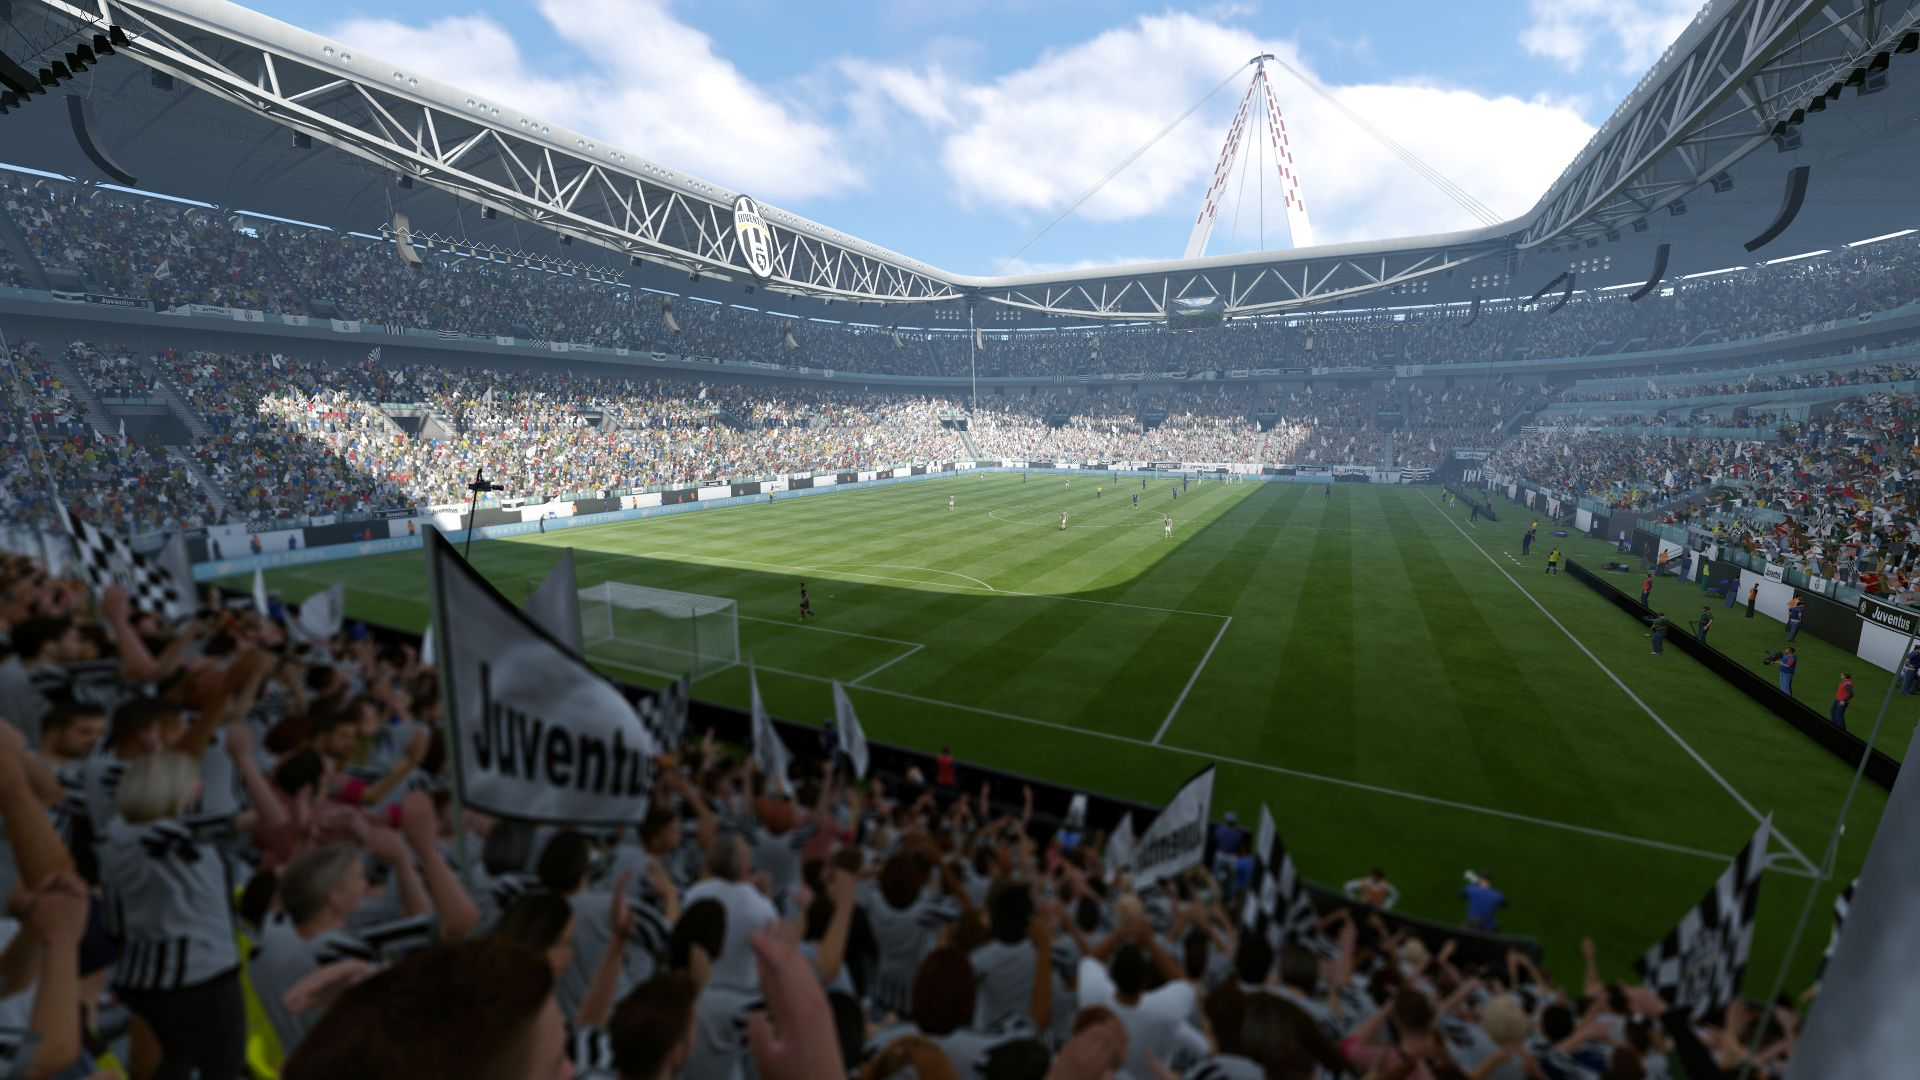 https://data4.origin.com/live/content/dam/originx/web/app/games/fifa/fifa-17/screenshots/fifa-17/Juventus_Stadium_pdp_screenhi_3840x2160_en_ww.jpg